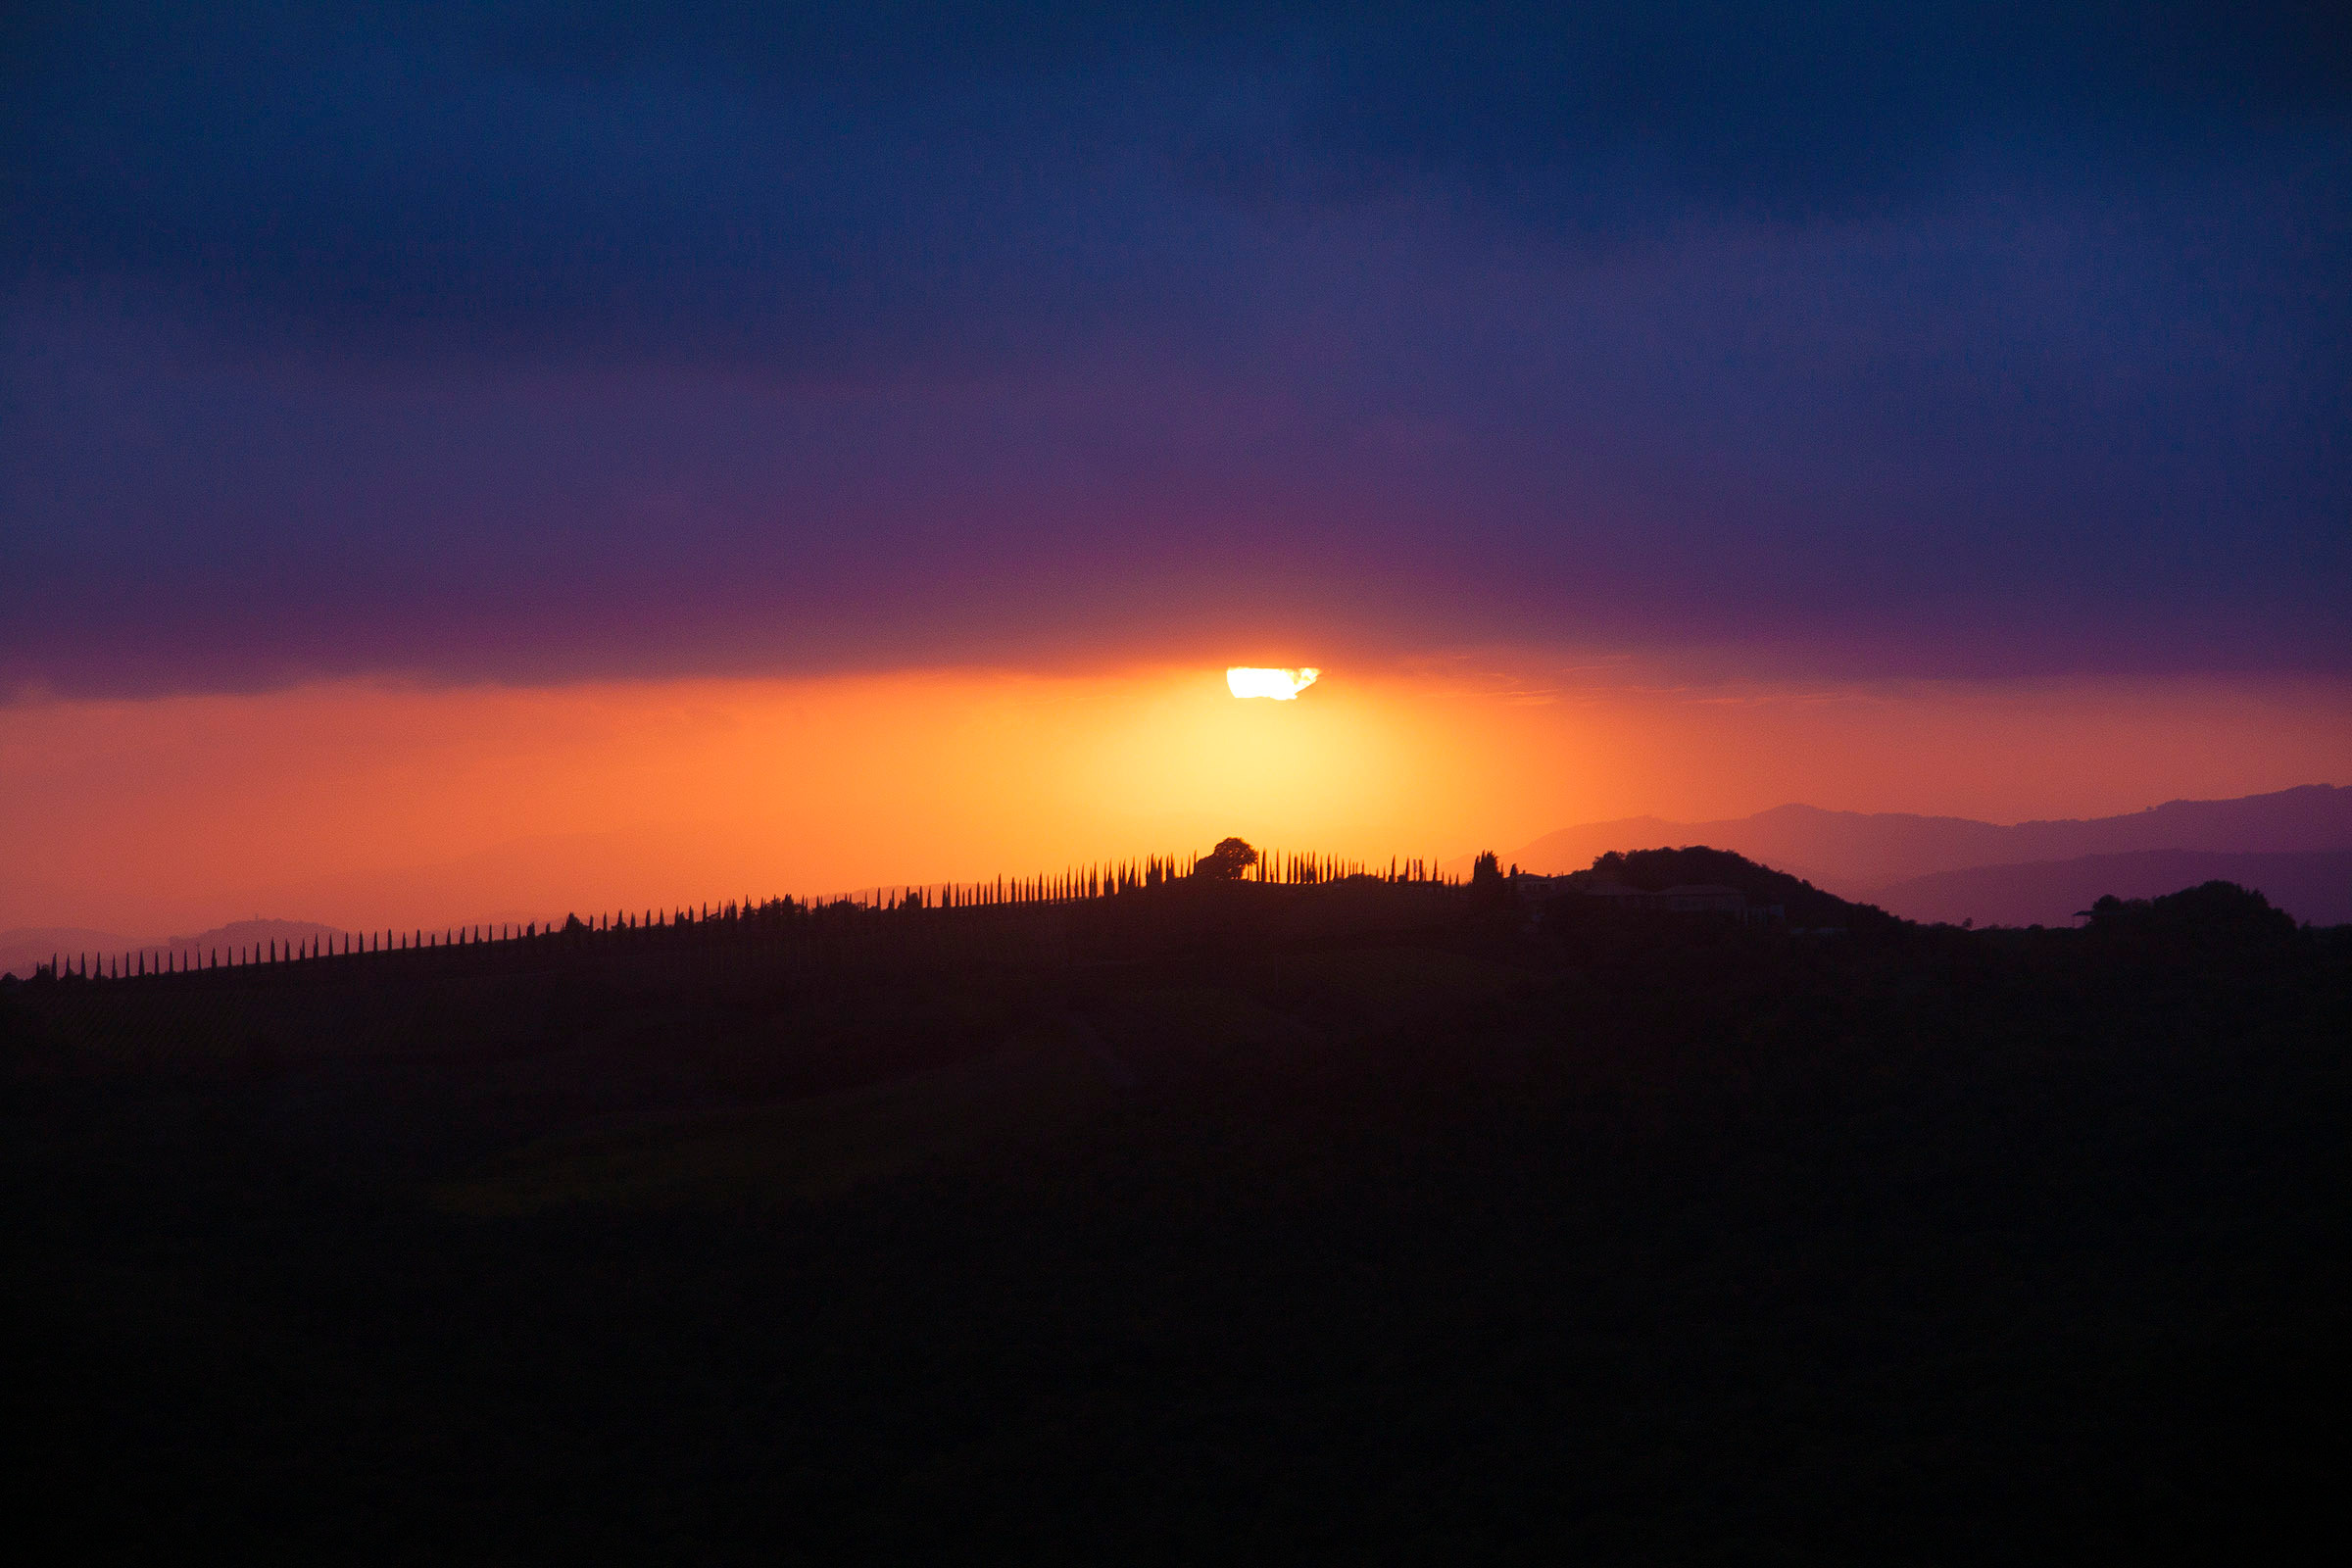 Sunset as seen from the walls of Montalcino